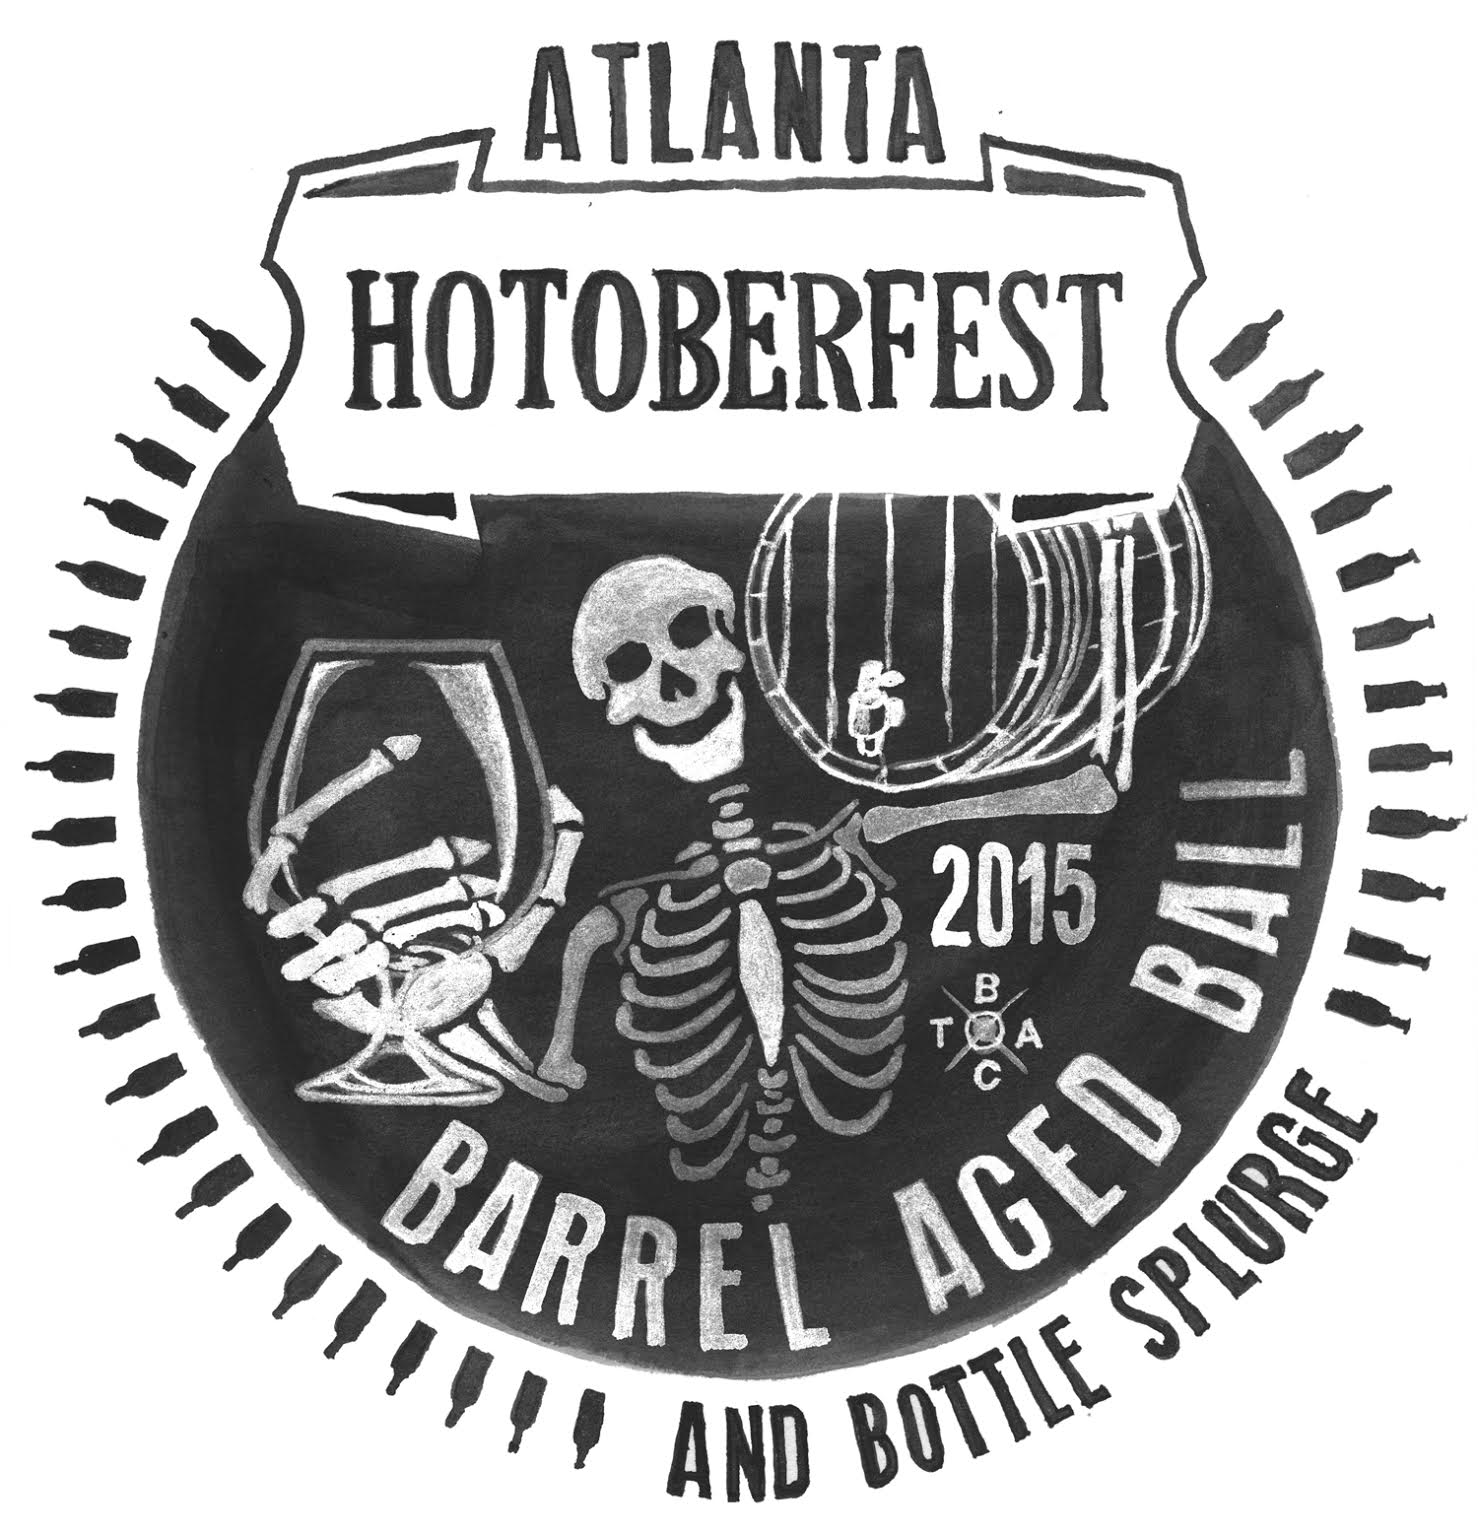 HOToberfest is coming!